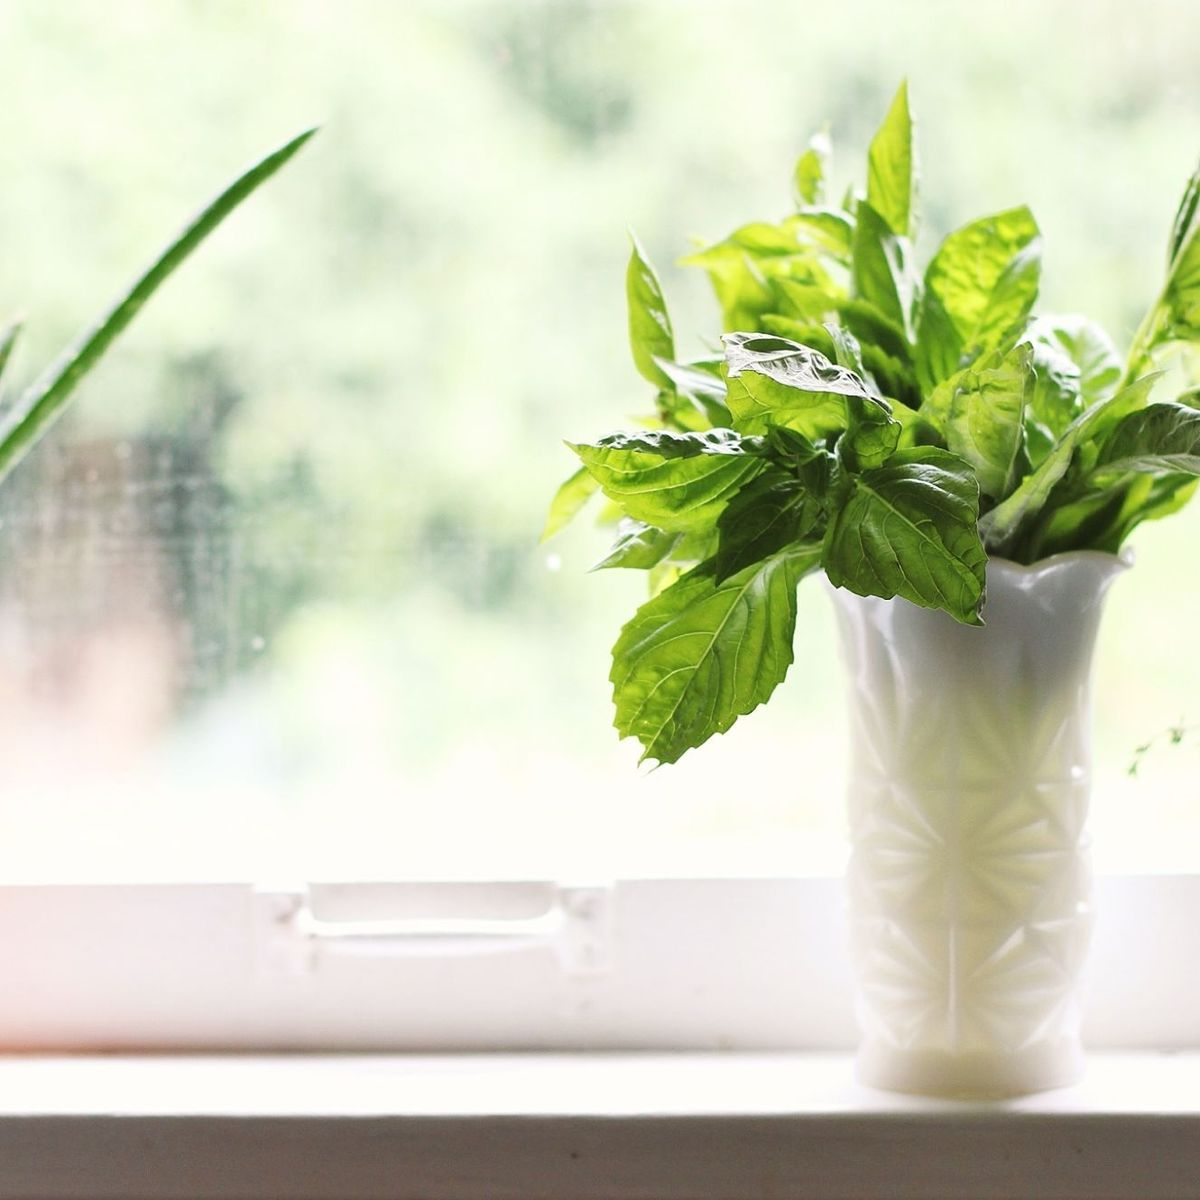 How to Actually Use Up an Entire Bunch of Basil in 1 Week